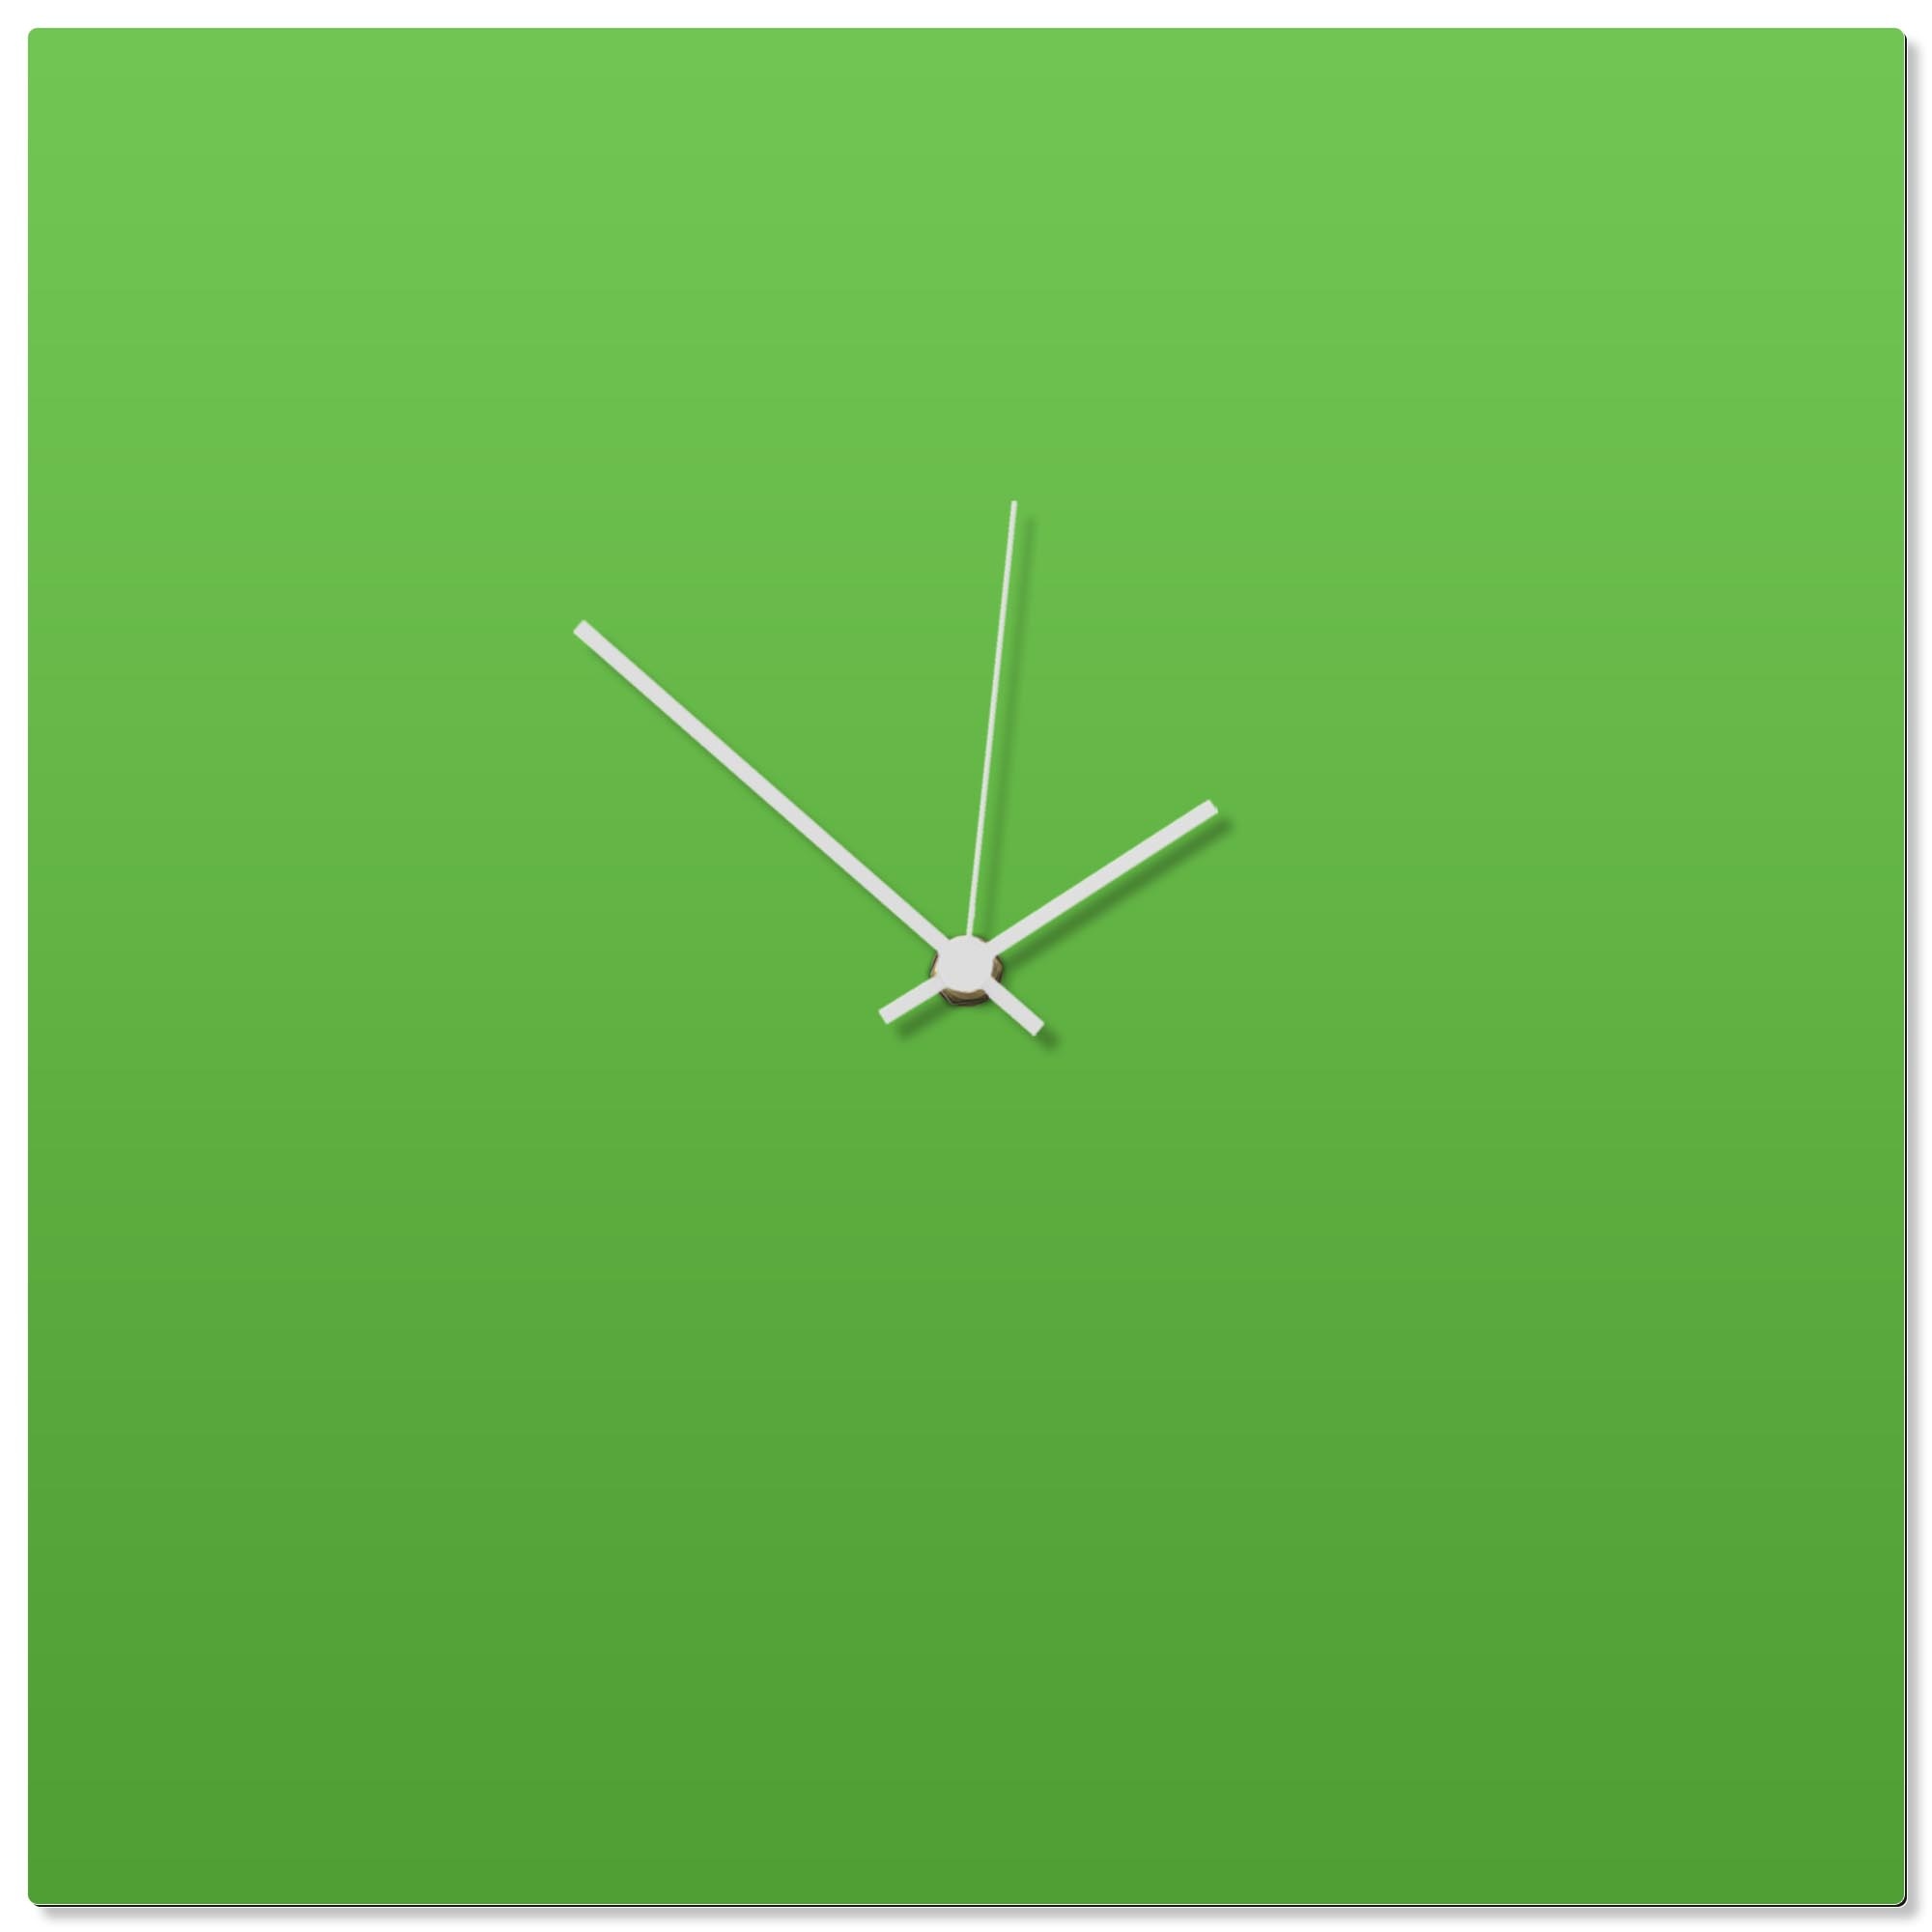 Greenout White Square Clock 16x16in. Aluminum Polymetal